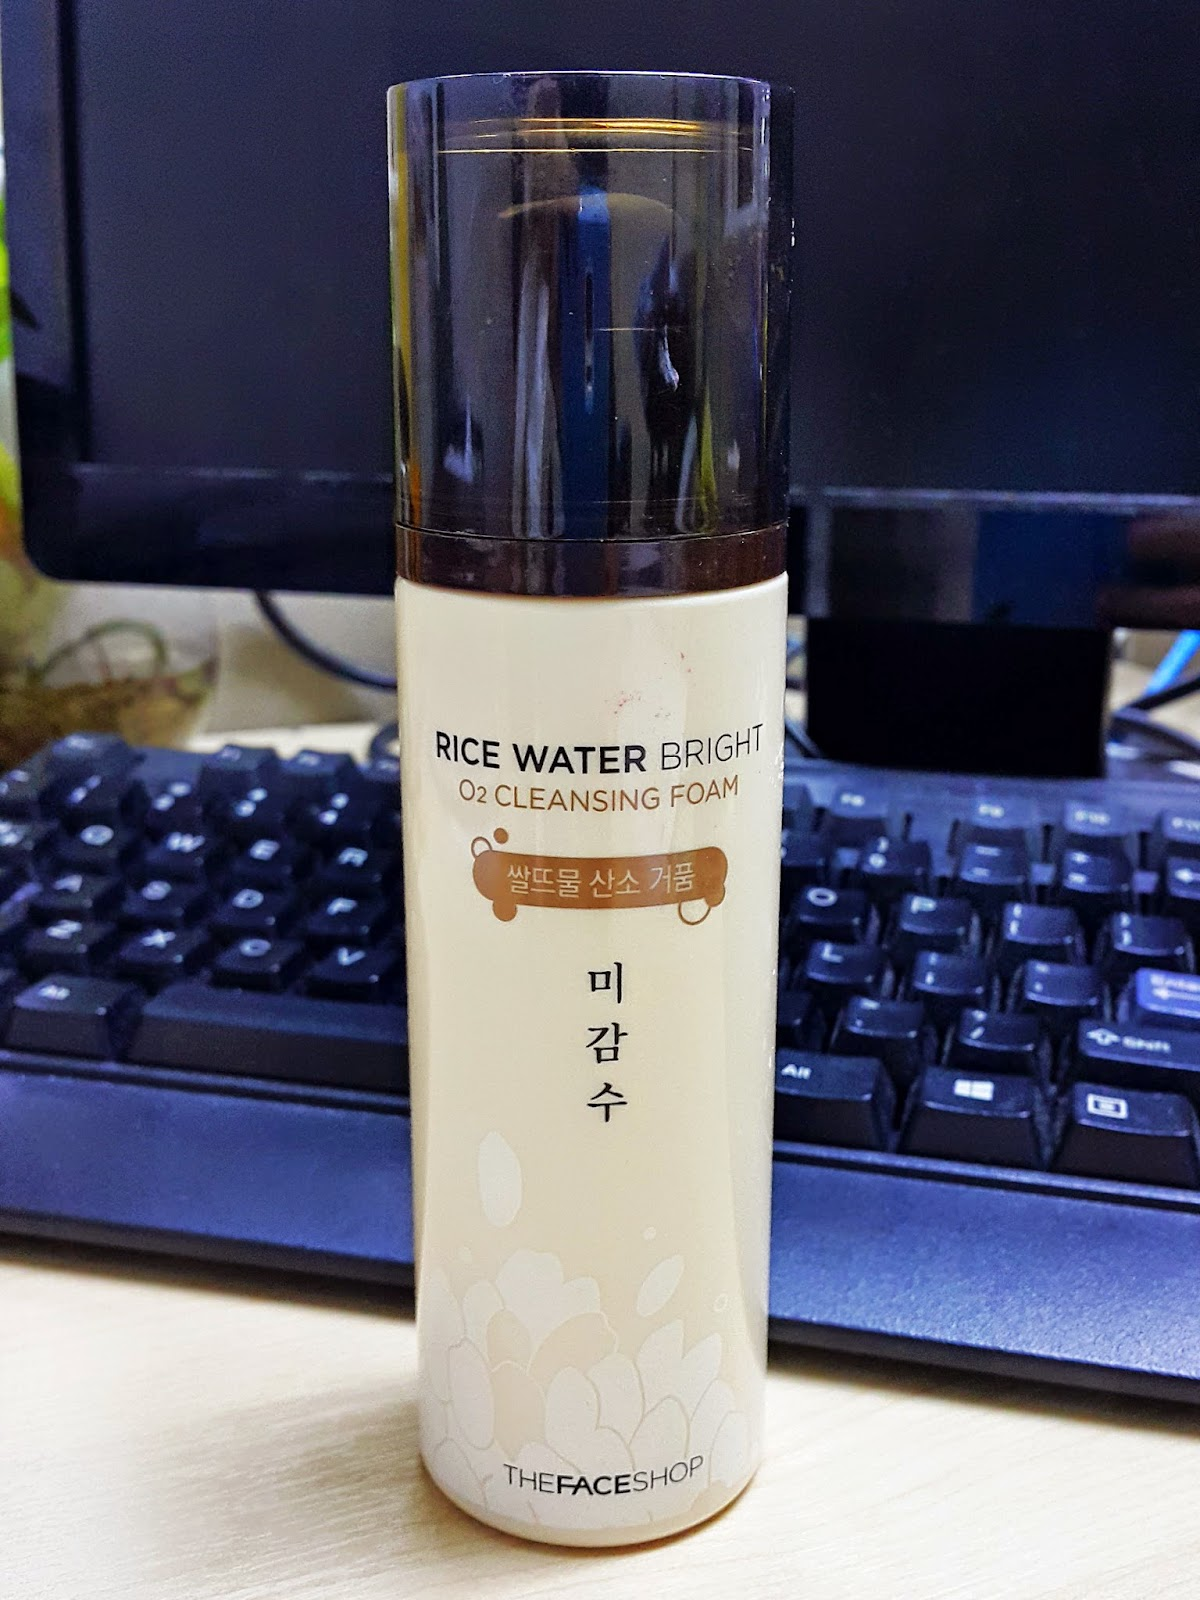 [Review] The Face Shop Rice Water Bright O2 Cleansing Foam